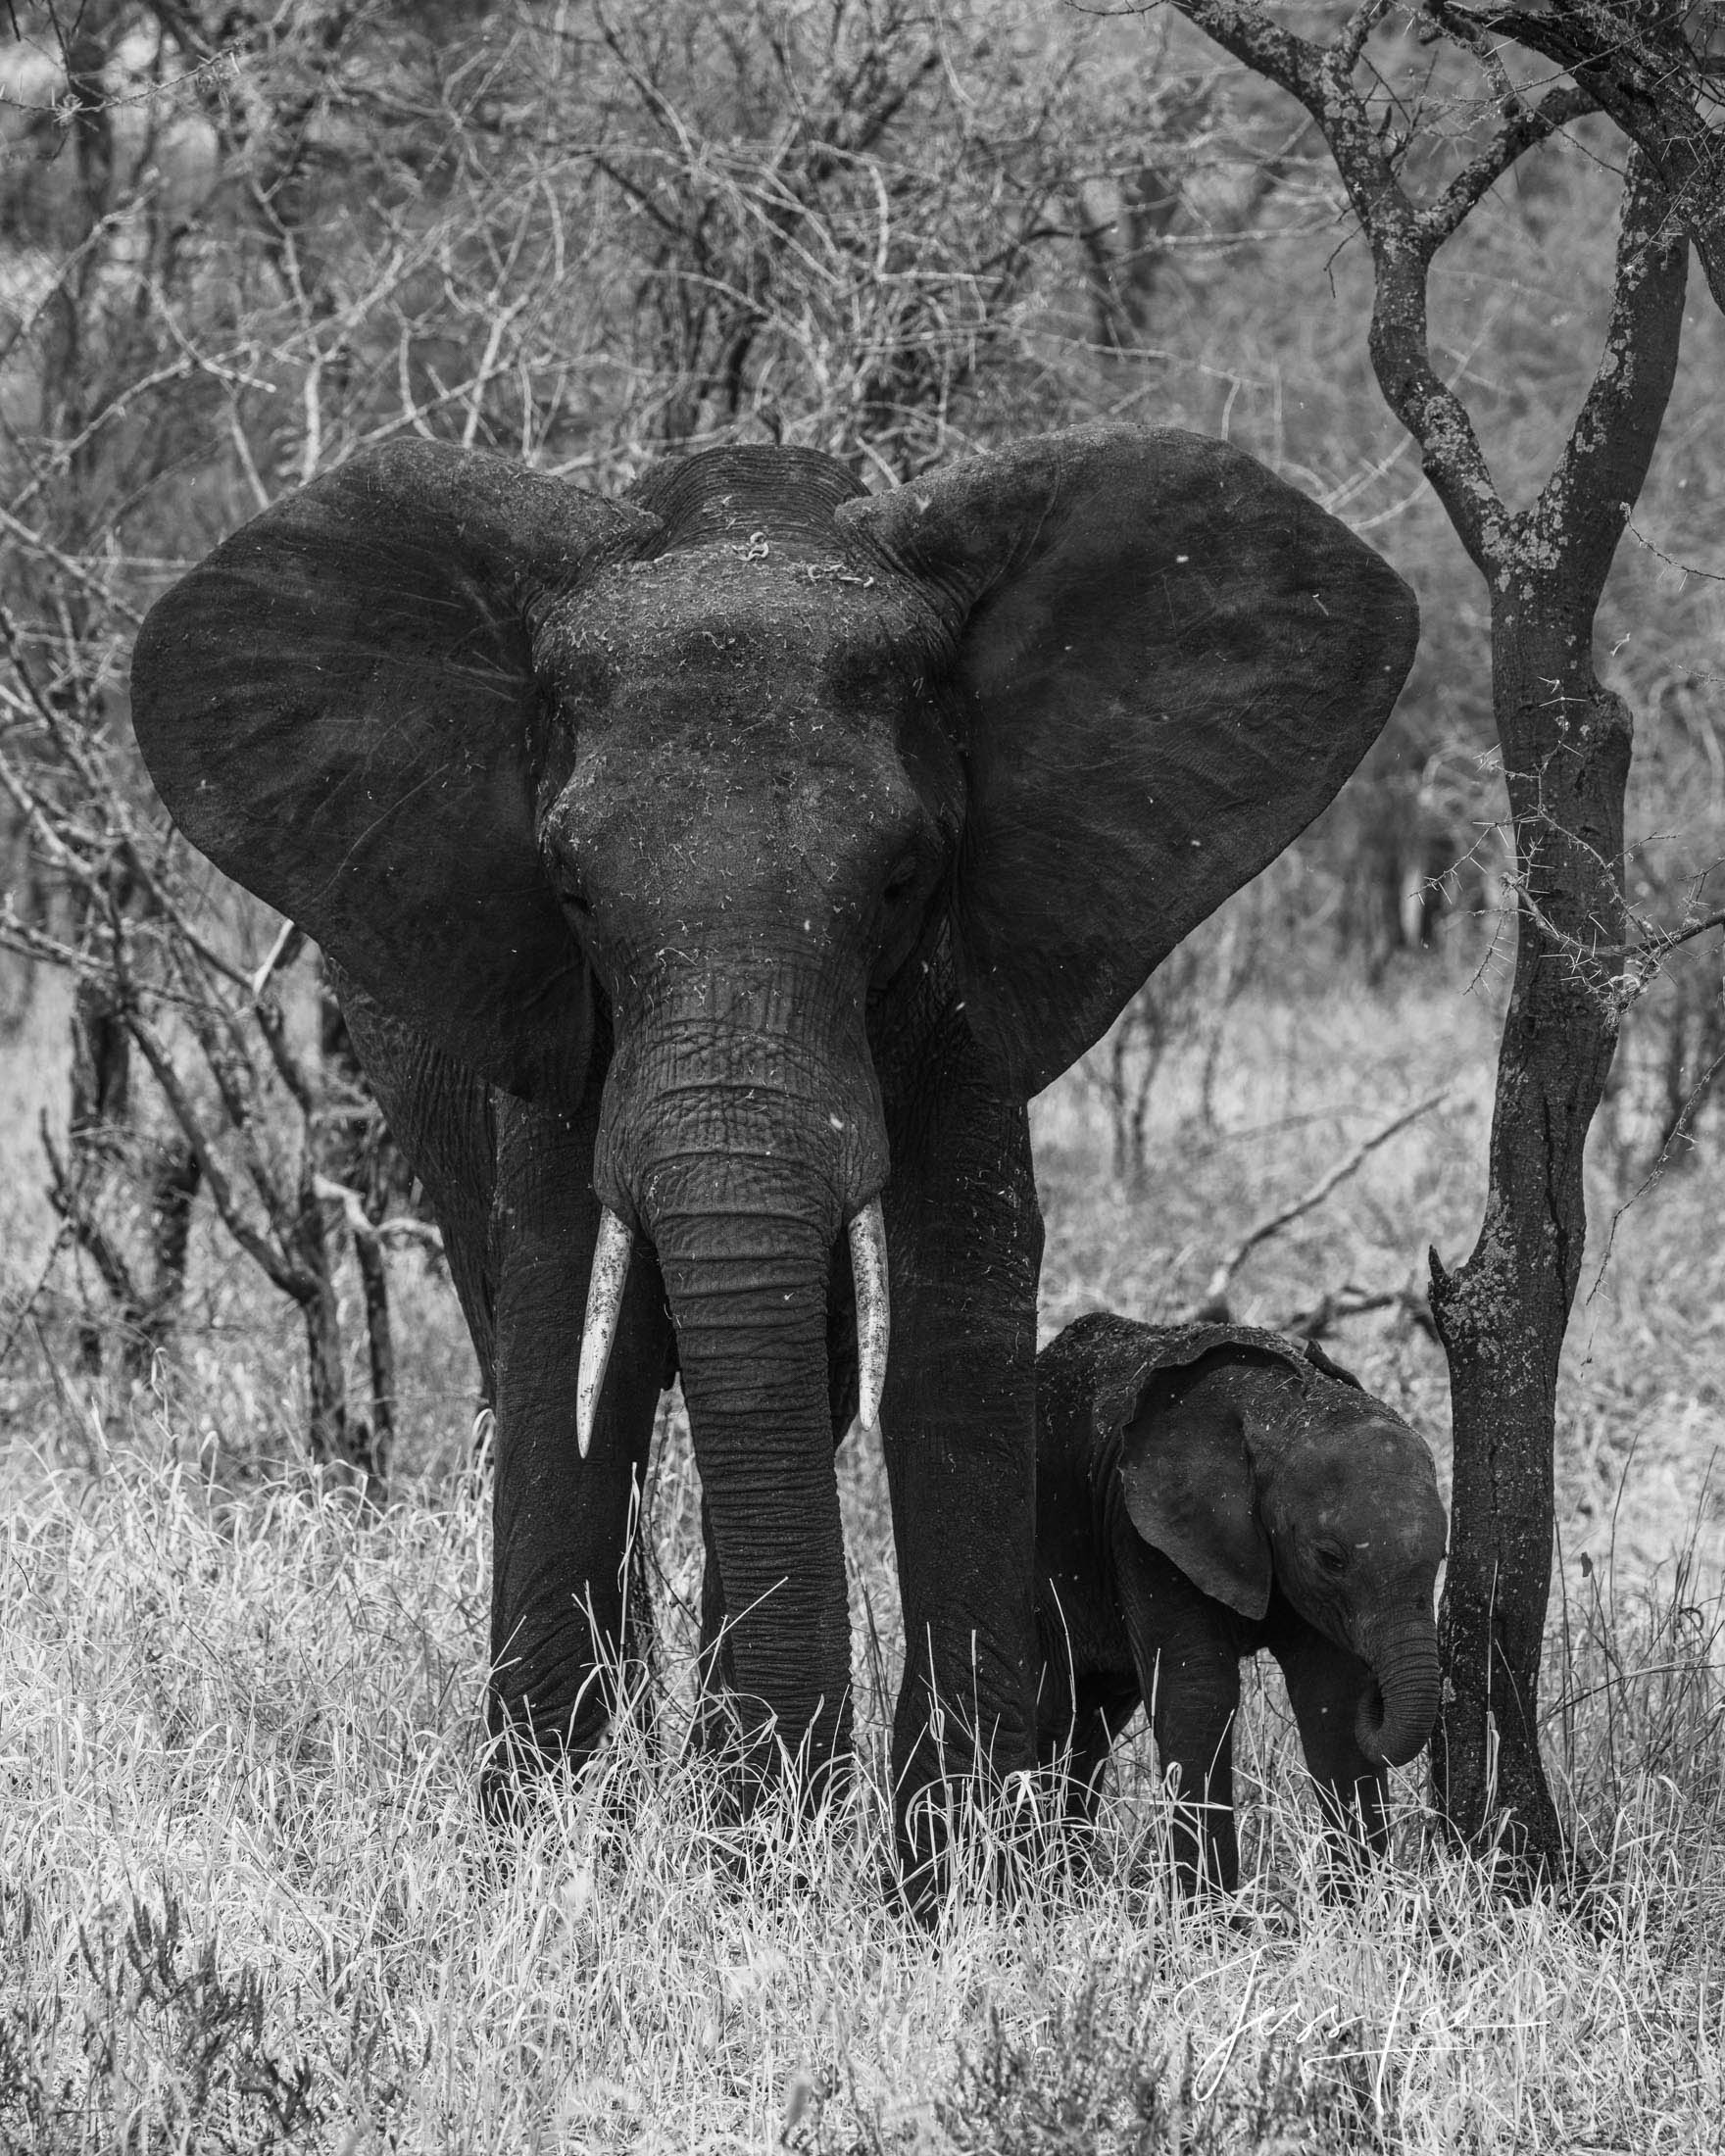 Black and White photo of African elephant and baby in the forest